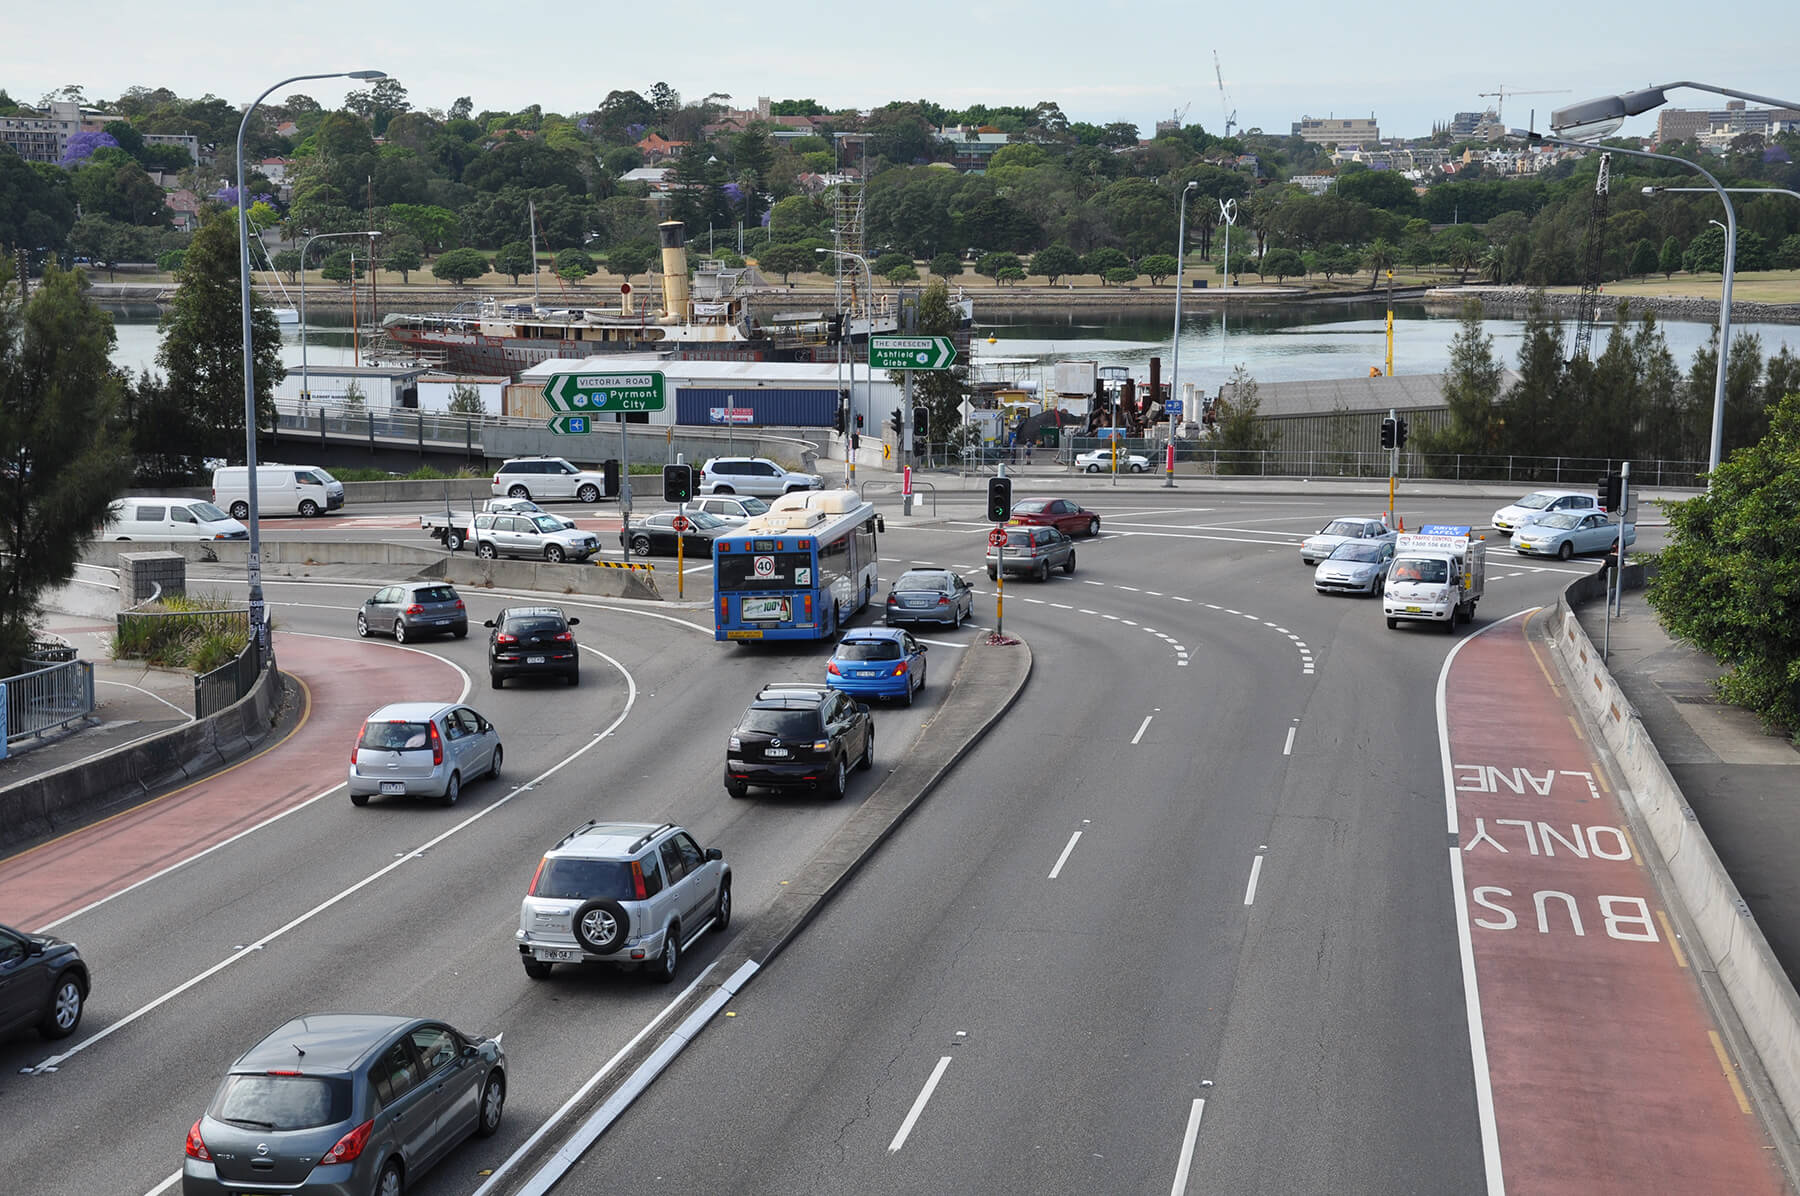 What Innovative Measures Are Taken to Ensure Road Traffic Safety